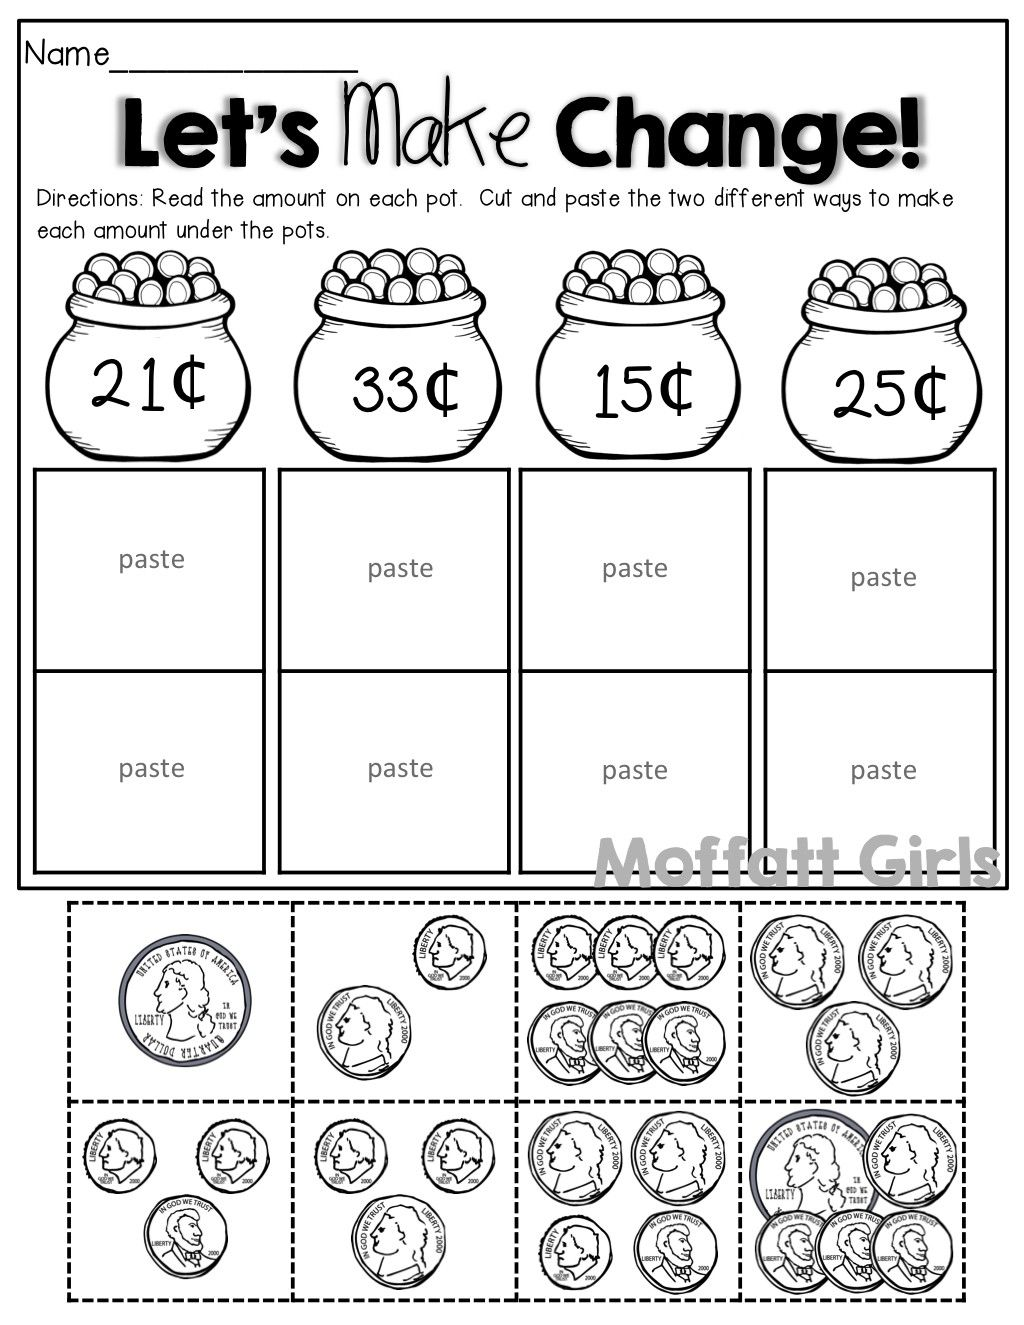 4 Worksheet Free Math Worksheets Second Grade 2 Counting Money Counting Money Canadian Nickel In 2020 Money Worksheets Homeschool Math Money Math